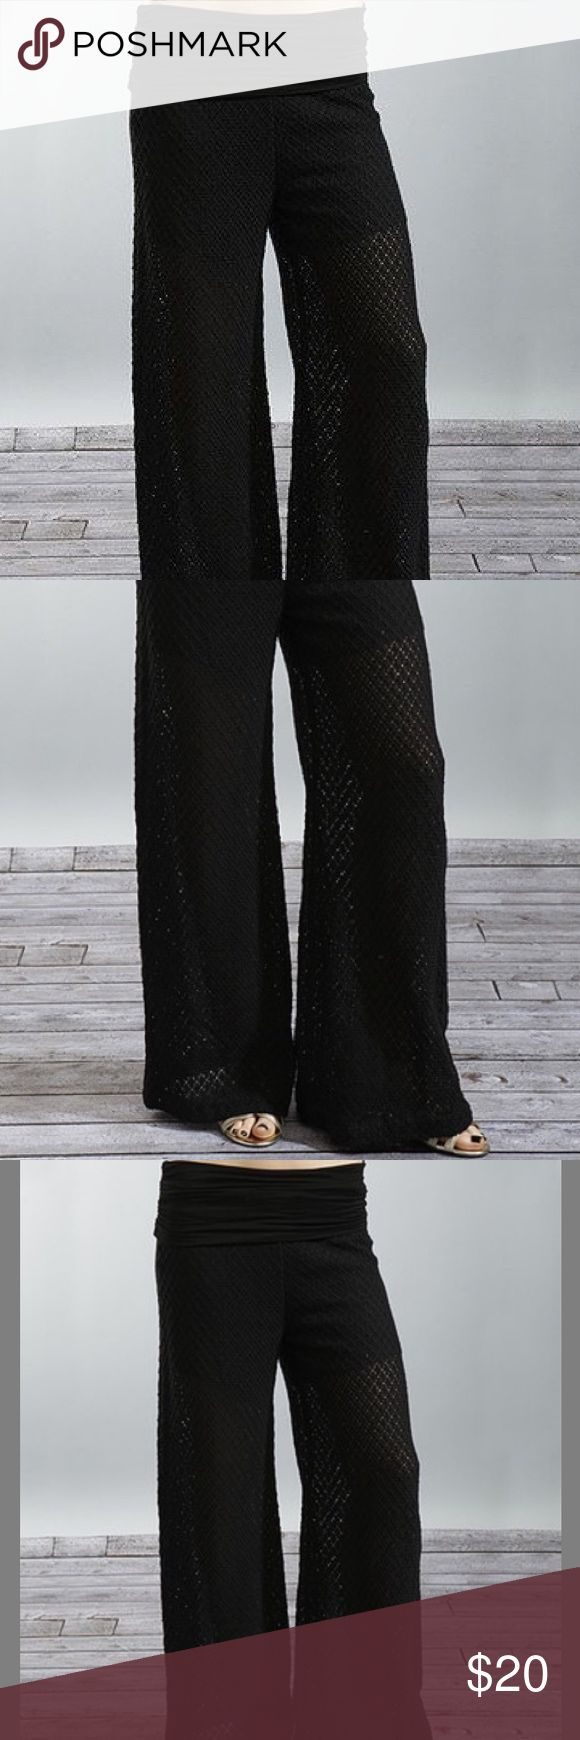 Chic Black Pointelle Pants NWOT! This soft pair's not just for lounging around the house. Featuring an open pointelle knit and flattering fold-over waistband, it's all a boho-chic lady needs for an eye-catching ensemble. Size: S  100% cotton Pants